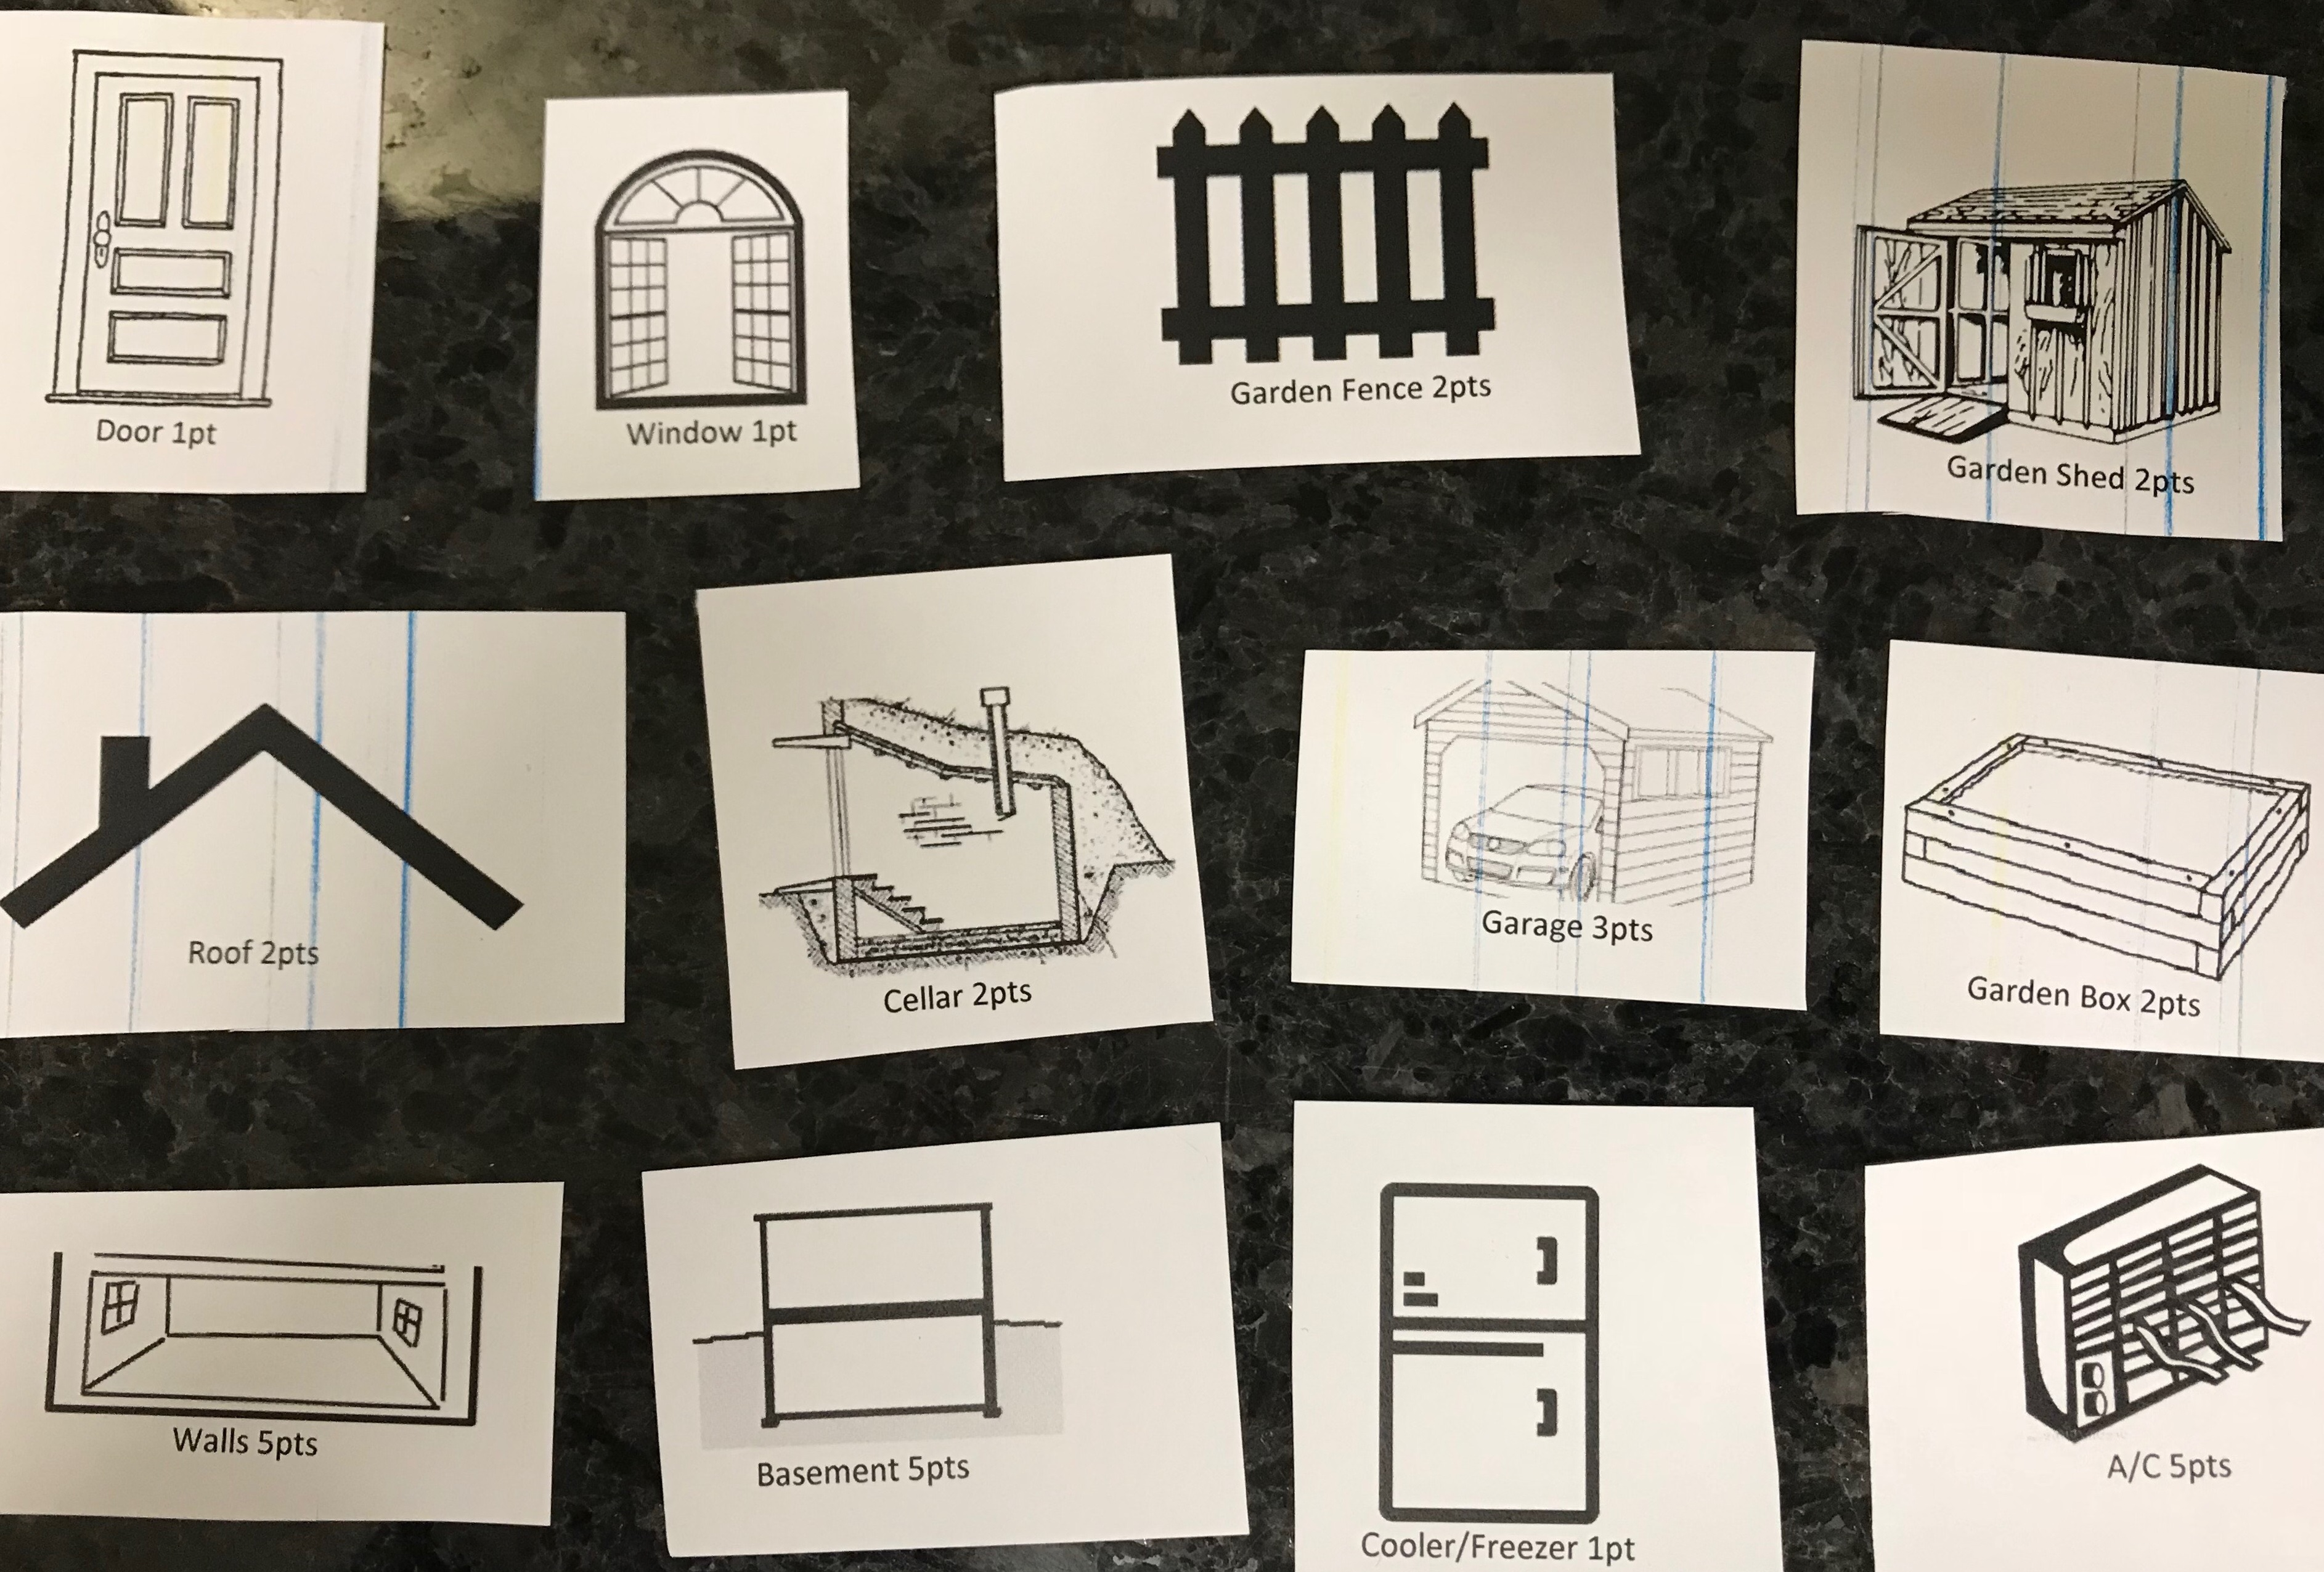 Story cards for various parts of a house